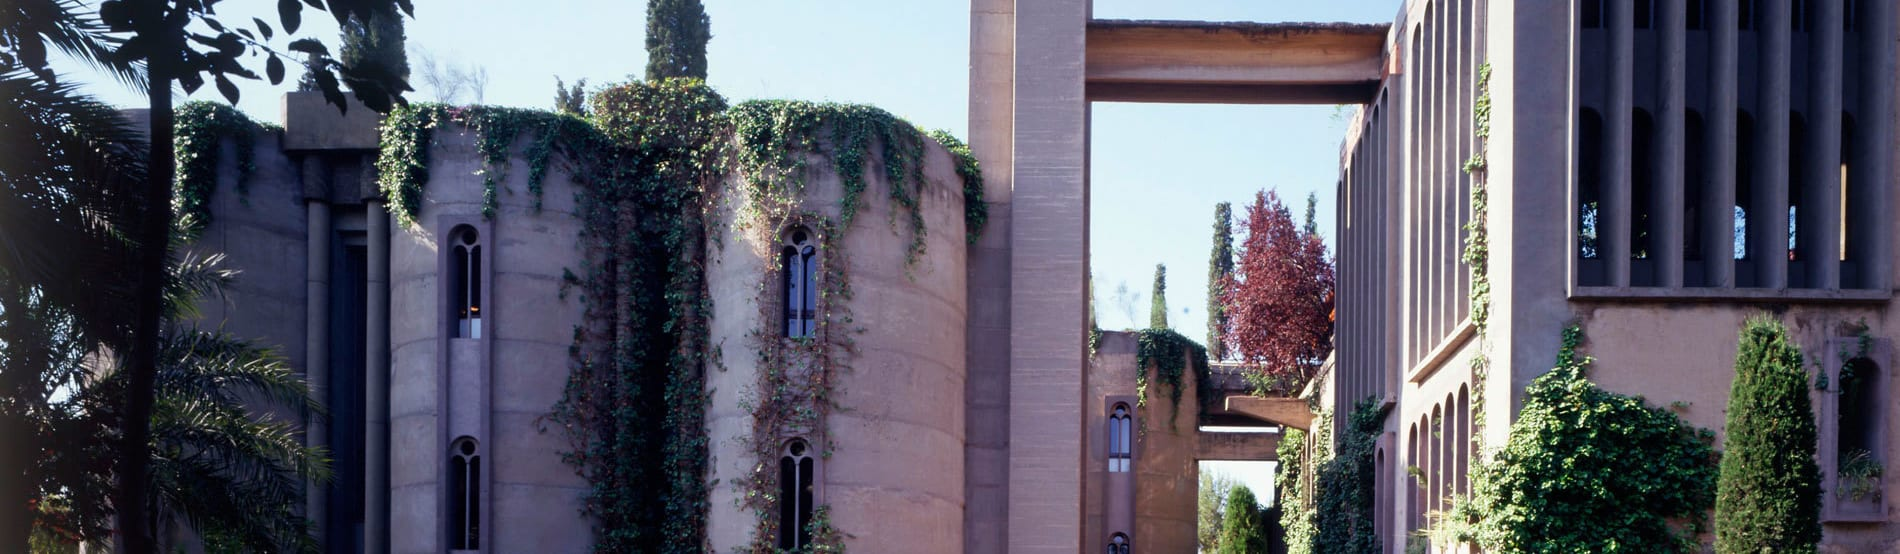 Ricardo Bofill Taller de Arquitectura